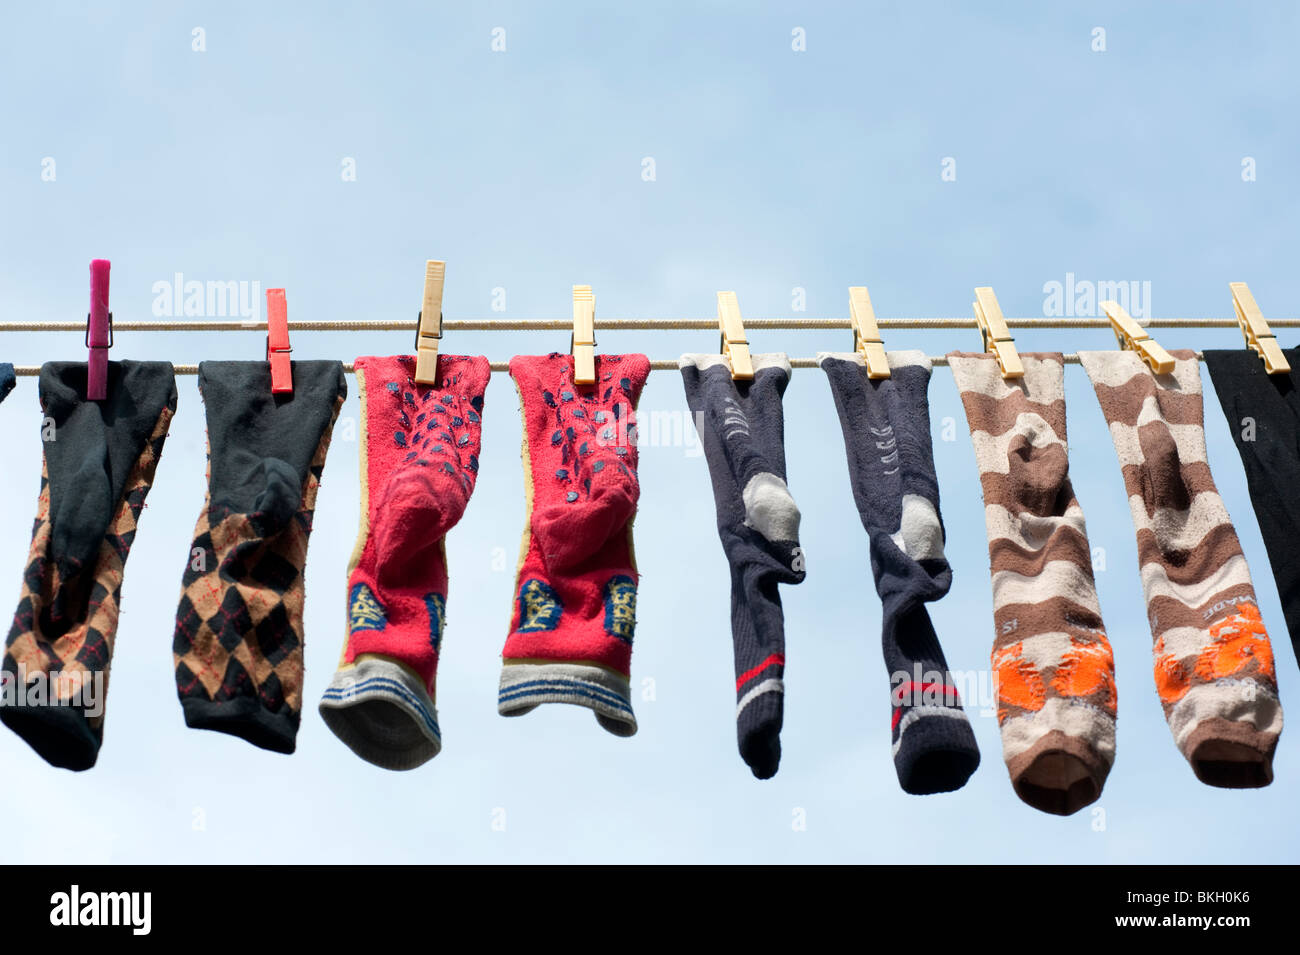 Row of socks drying on washing line in Burano Italy - Stock Image